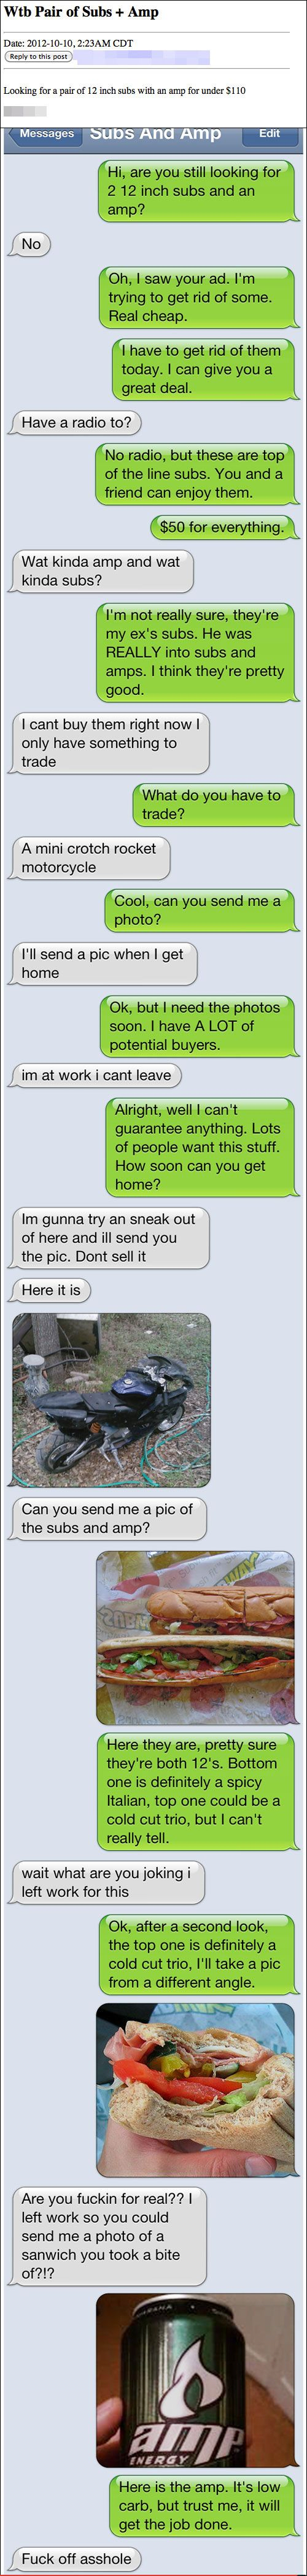 35 Glorious Text Pranks For April Fool's… And The Rest Of The Year -- Read more at http://runt-of-the-web.com/glorious-text-pranks#jB3v7Fwq5T6e1eGp.99